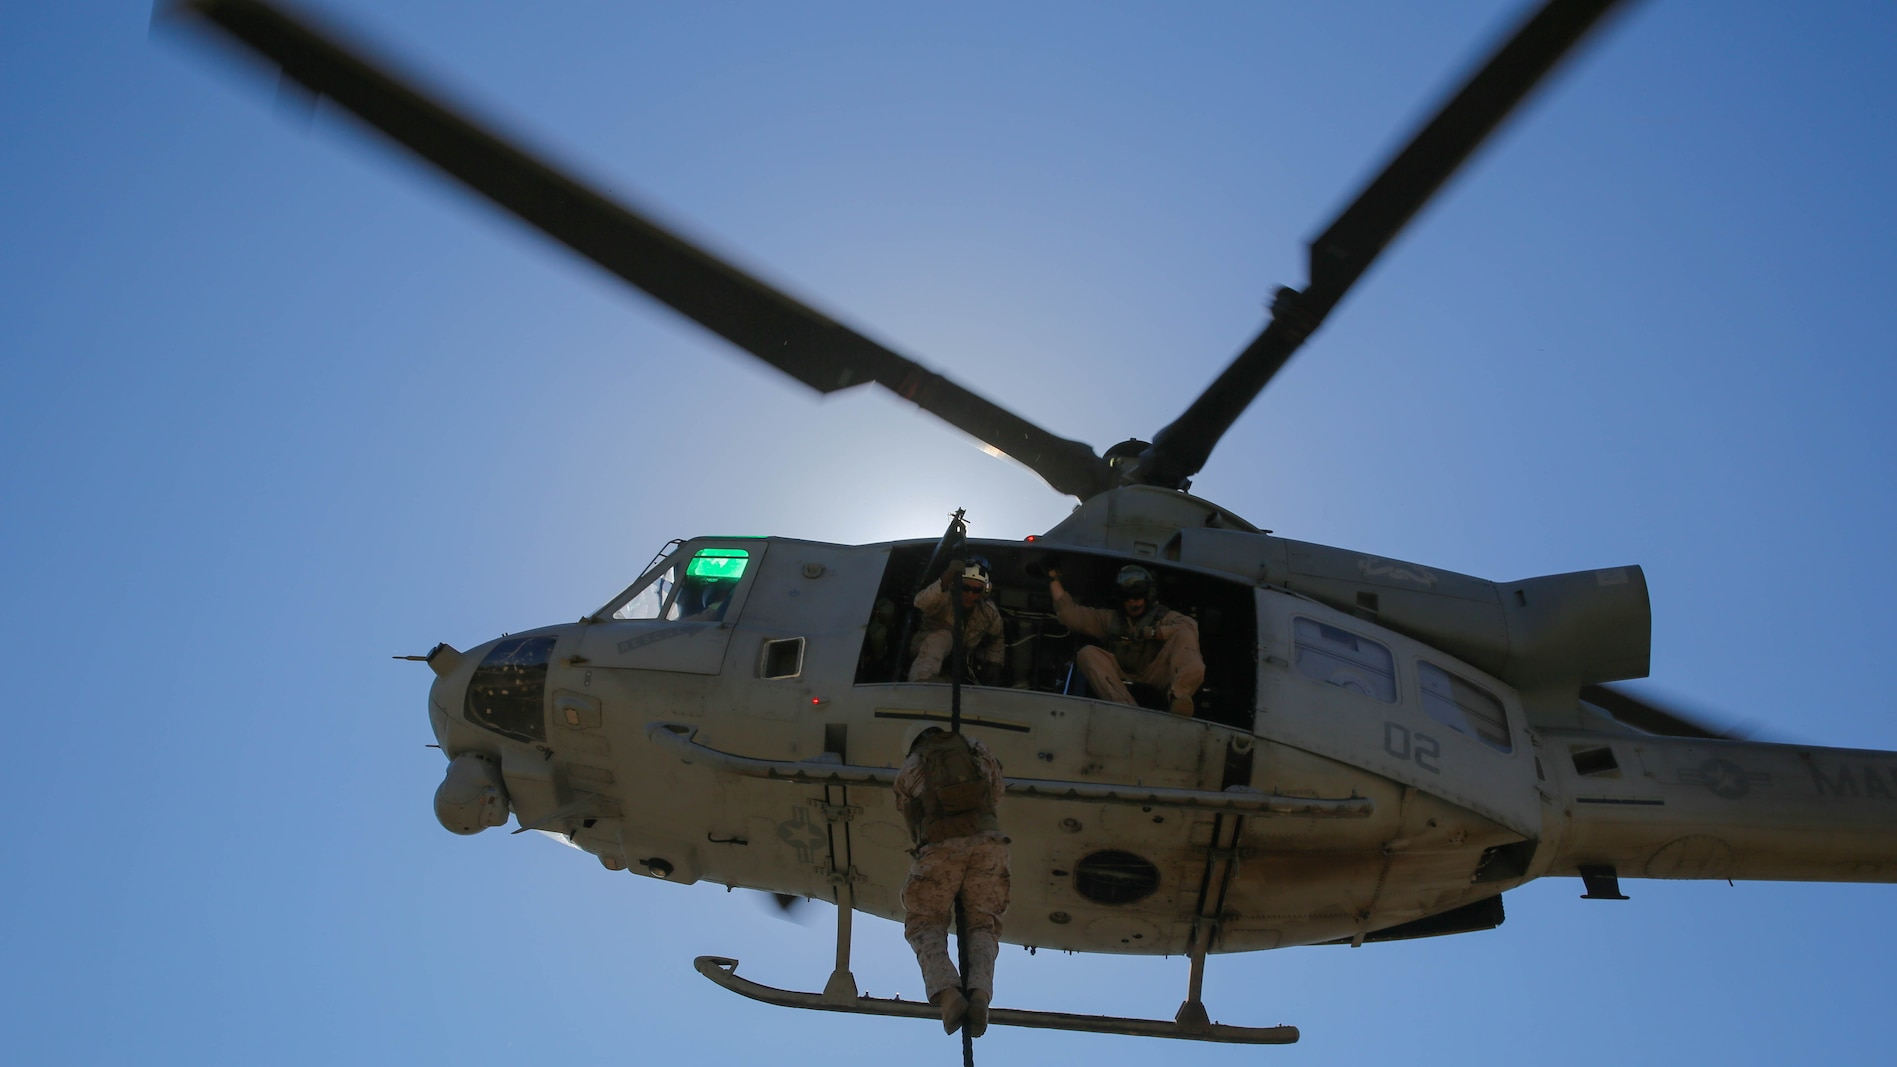 A Marine with Company A, 1st Reconnaissance Battalion, 1st Marine Division, I Marine Expeditionary Force, fast-ropes out of a UH-1Y Huey helicopter on Marine Corps Base Camp Pendleton, Calif., Aug. 18, 2015. Utilizing both fast-roping and Special Patrol Insertion and Extraction rigging methods, the purpose of the training exercise was to integrate operational coordination between the I MEF Ground Combat Element and Air Combat Element.